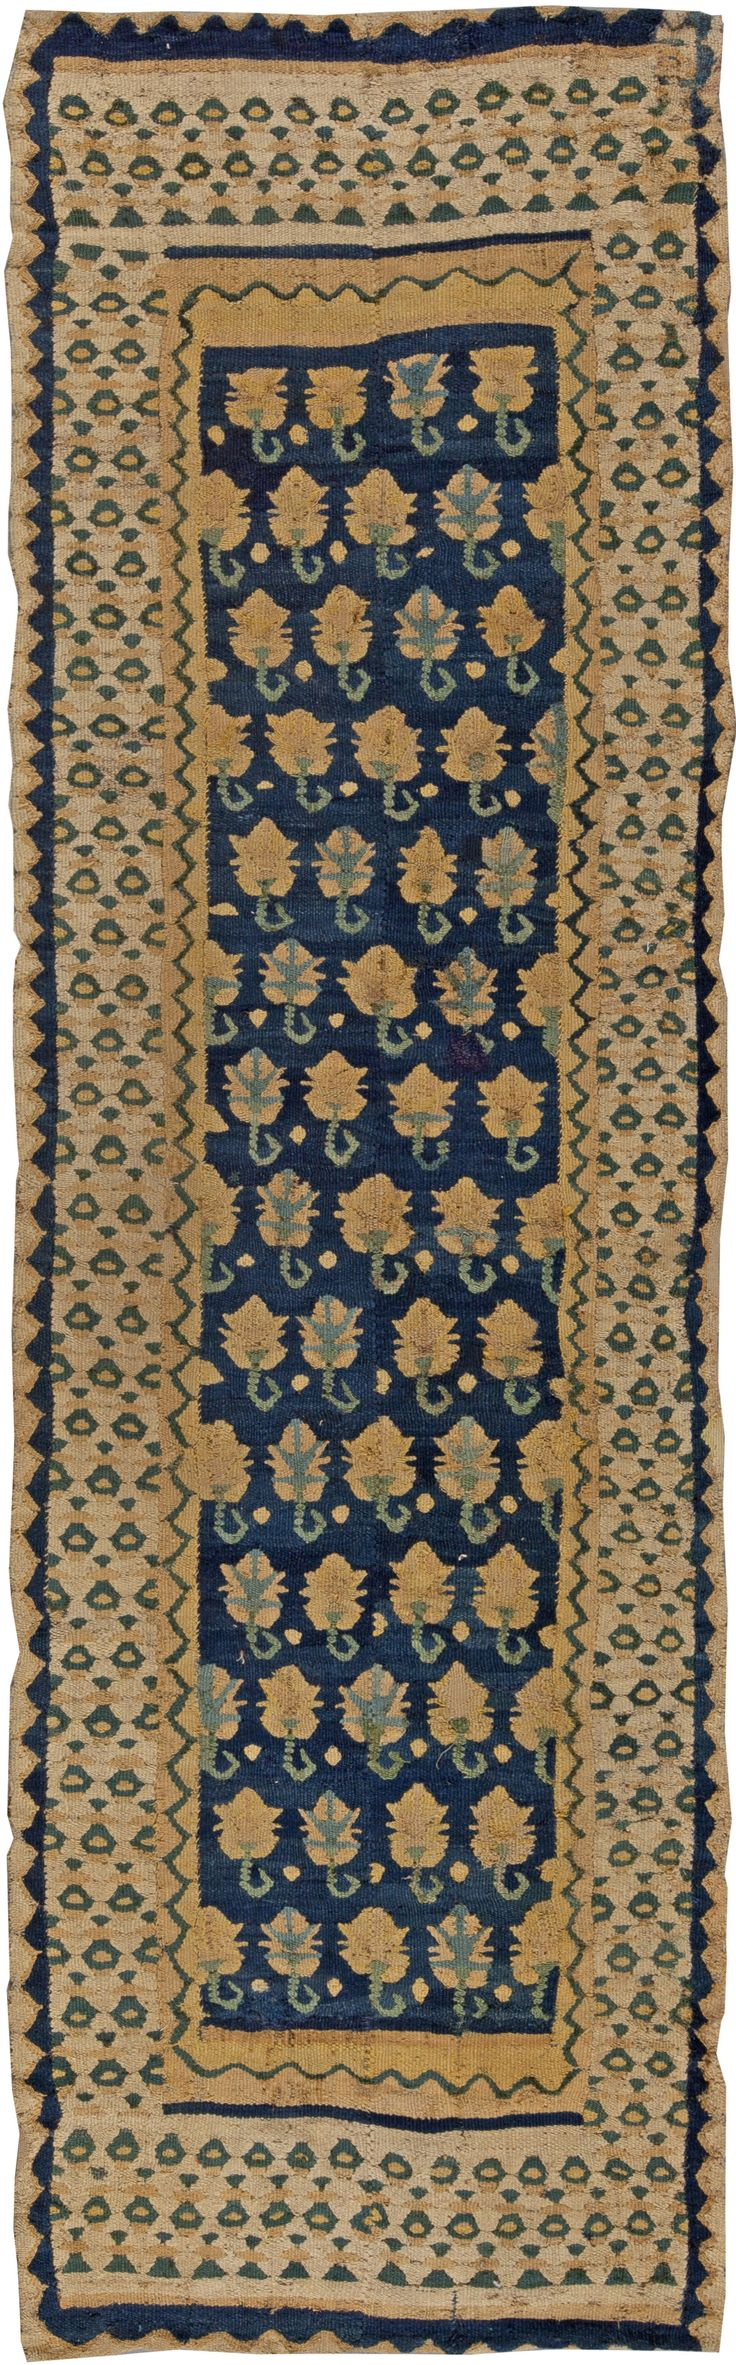 Doris Leslie Blau S Antique And Vintage Collection Of Runners Includes Rugs From All Over The World